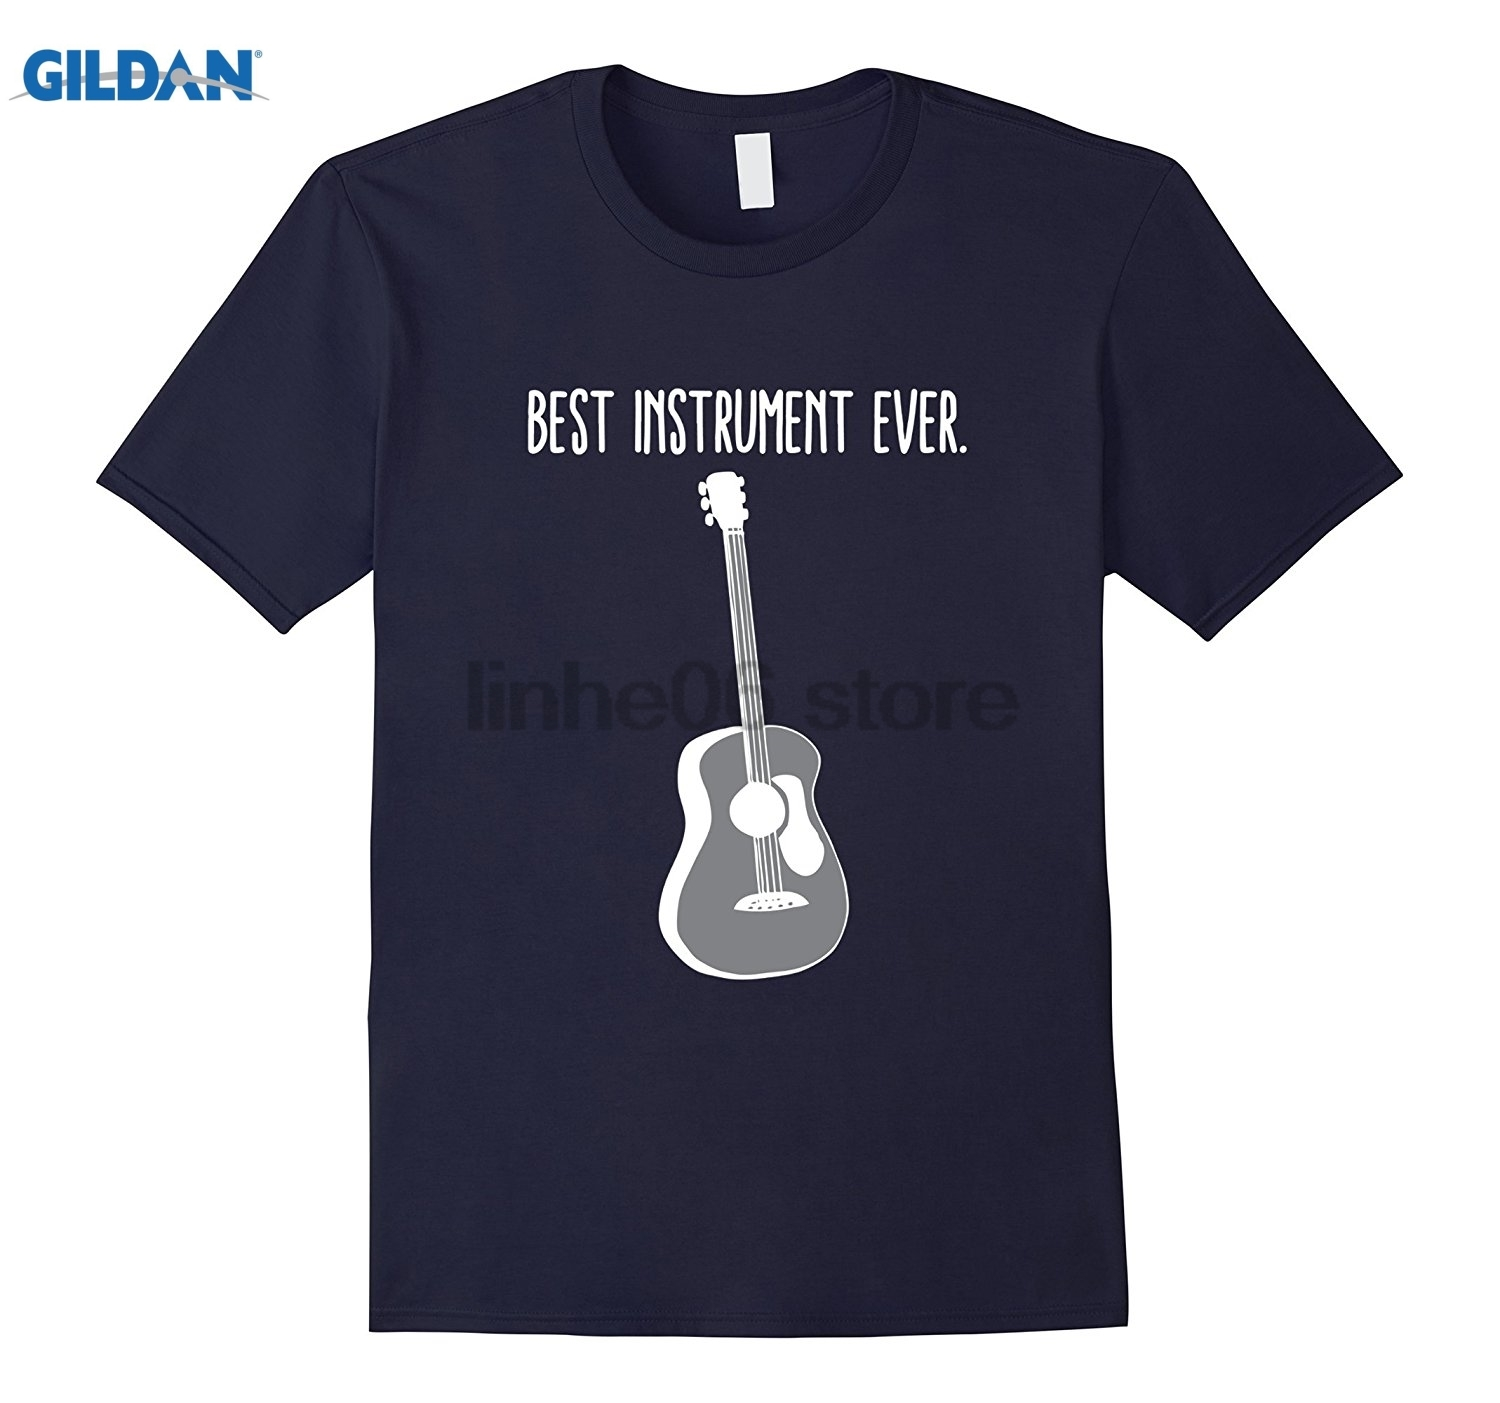 GILDAN Acoustic Guitar Shirt Best Instrument Ever Strings Tuner Pic Hot Womens T-shirt